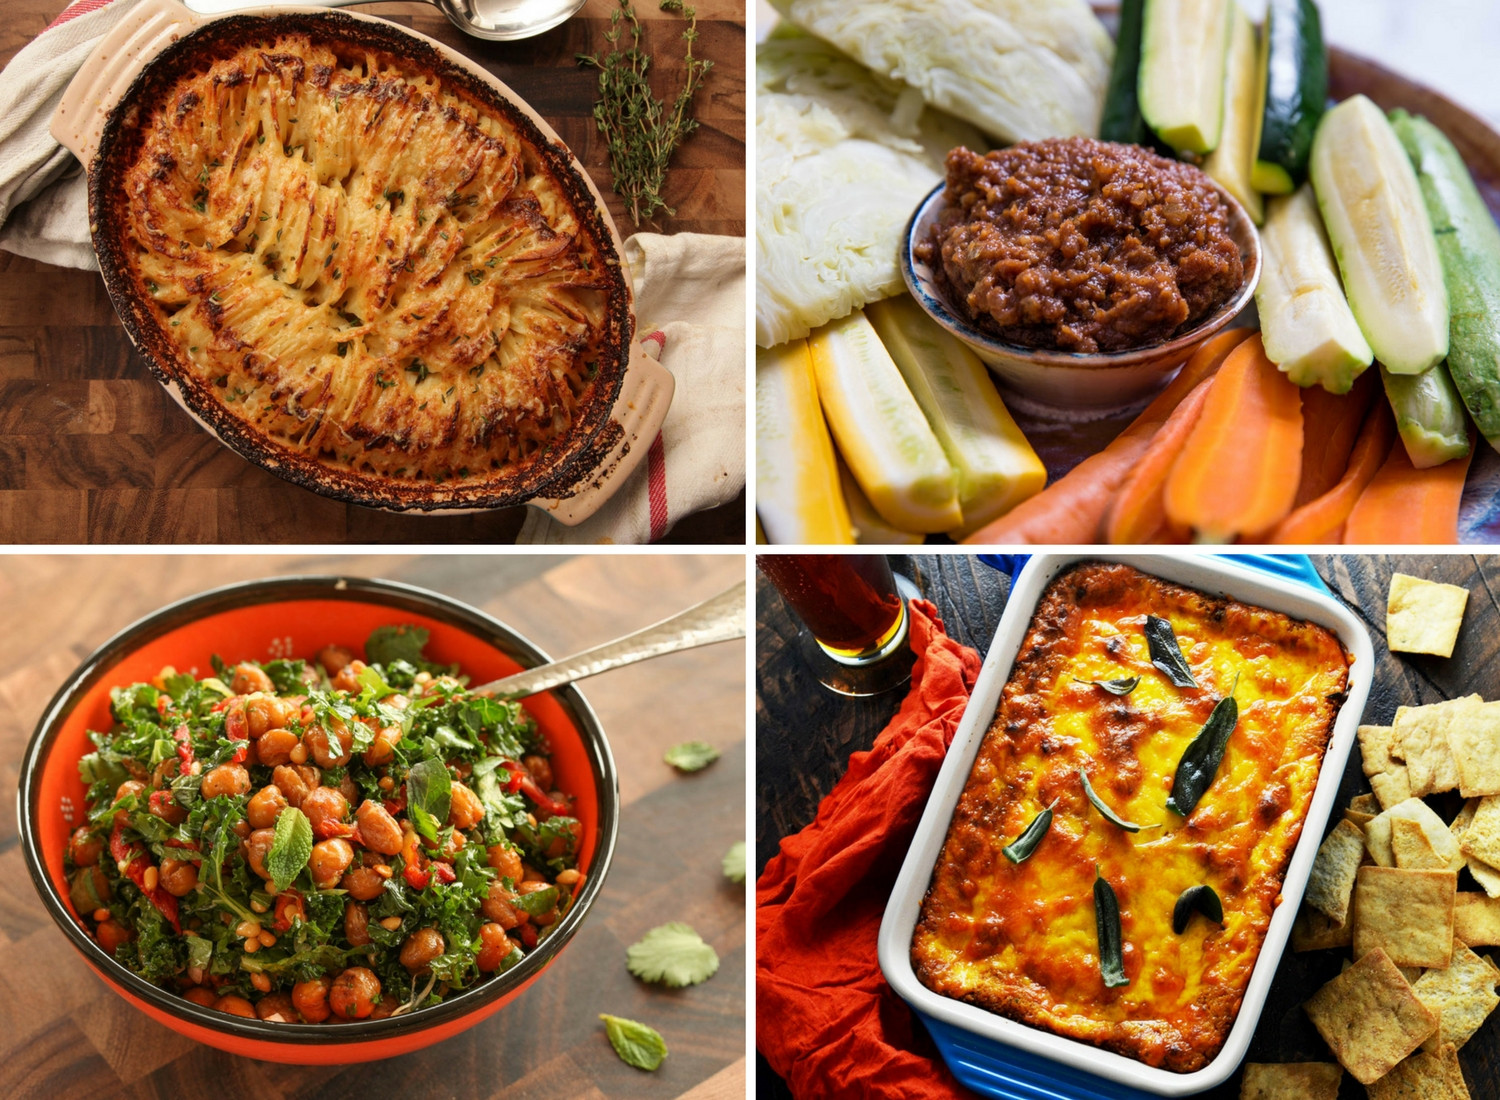 Make Ahead Dishes For Thanksgiving  15 Make Ahead Thanksgiving Dishes That Travel Well